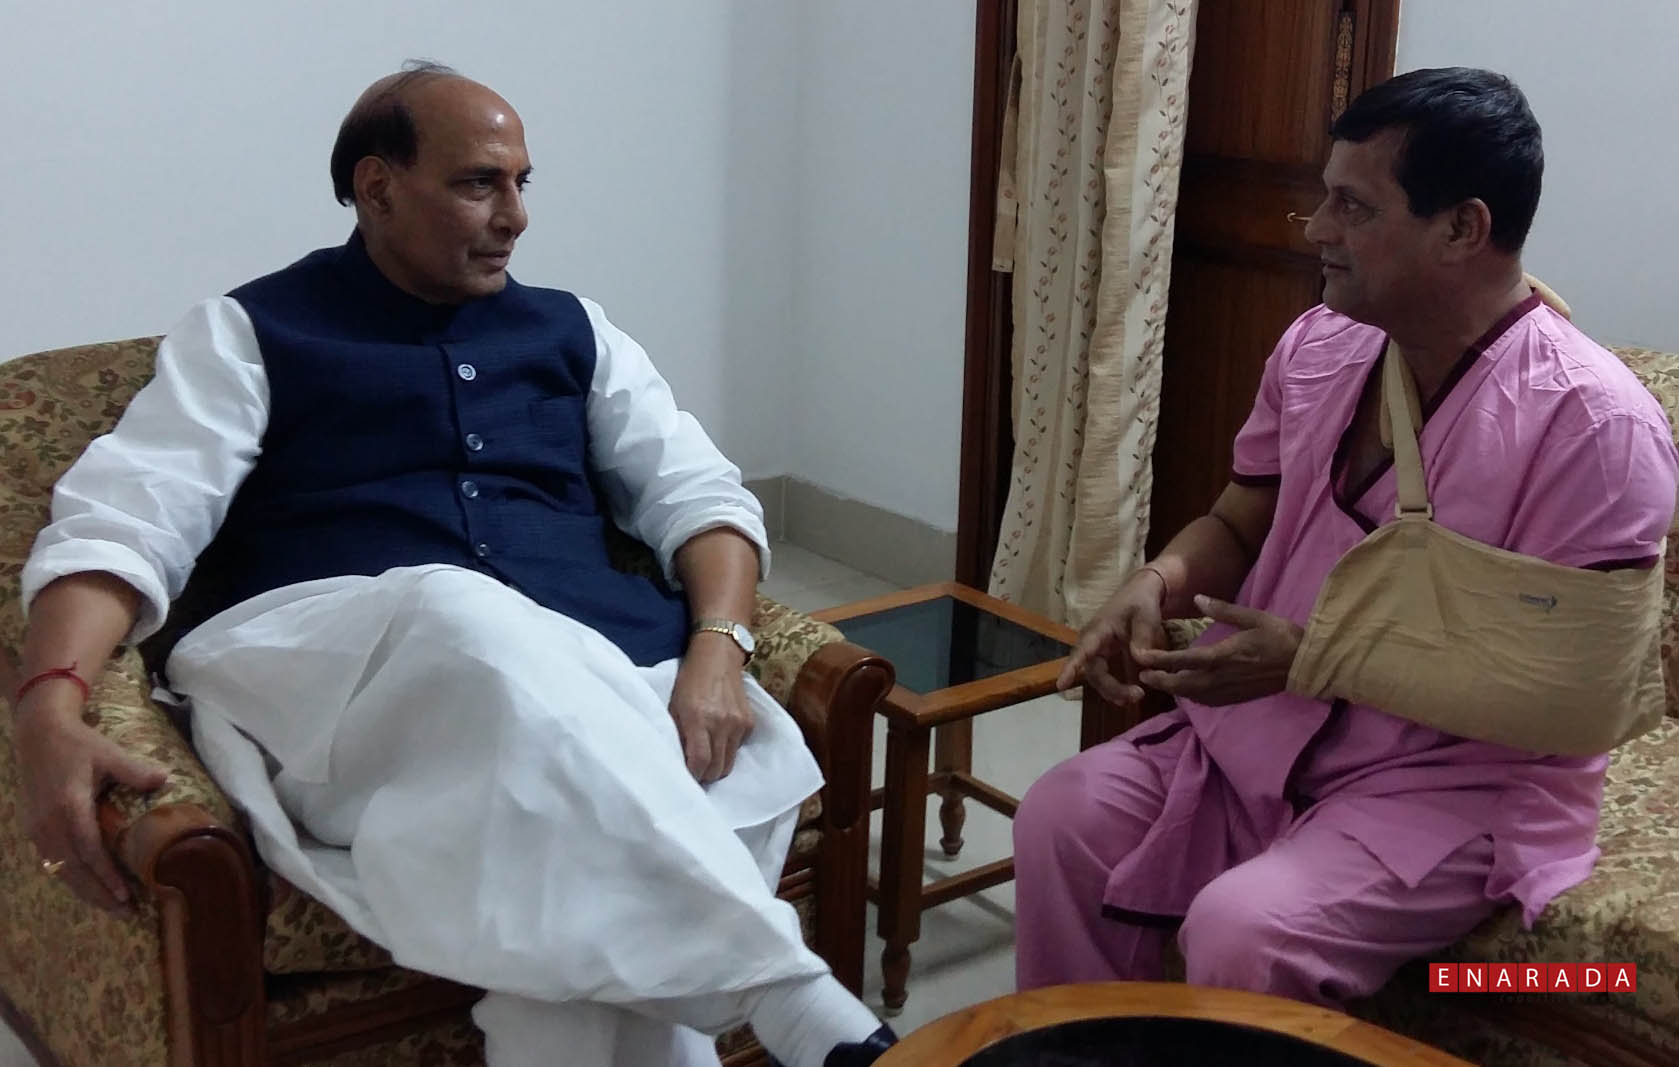 rajnath singh calls on dr achyuta samanta enarada com 19 2016 rajnath singh calls on dr achyuta samanta photo by